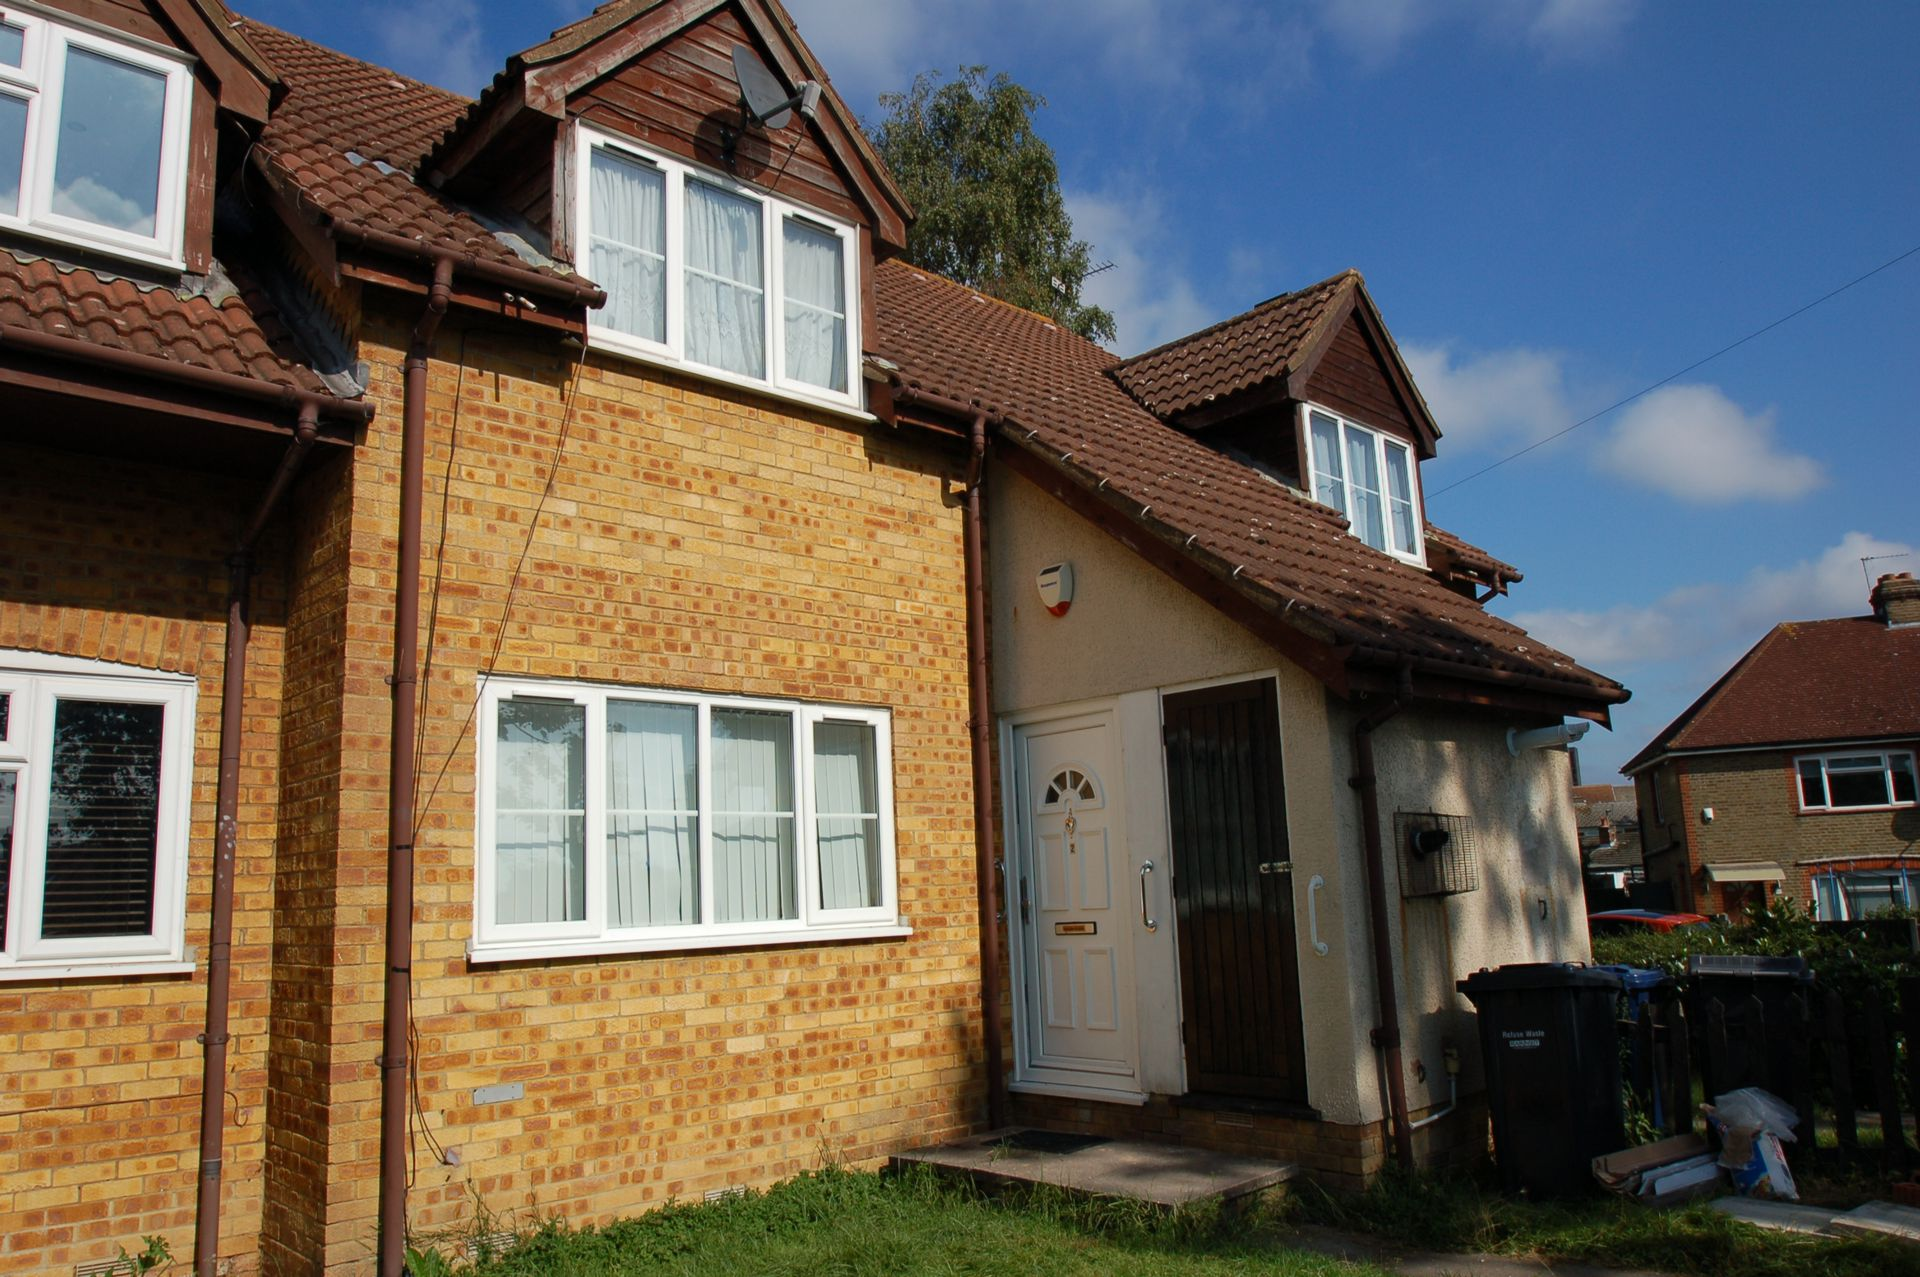 Photo 1, Pendragon Walk, Colindale, NW9